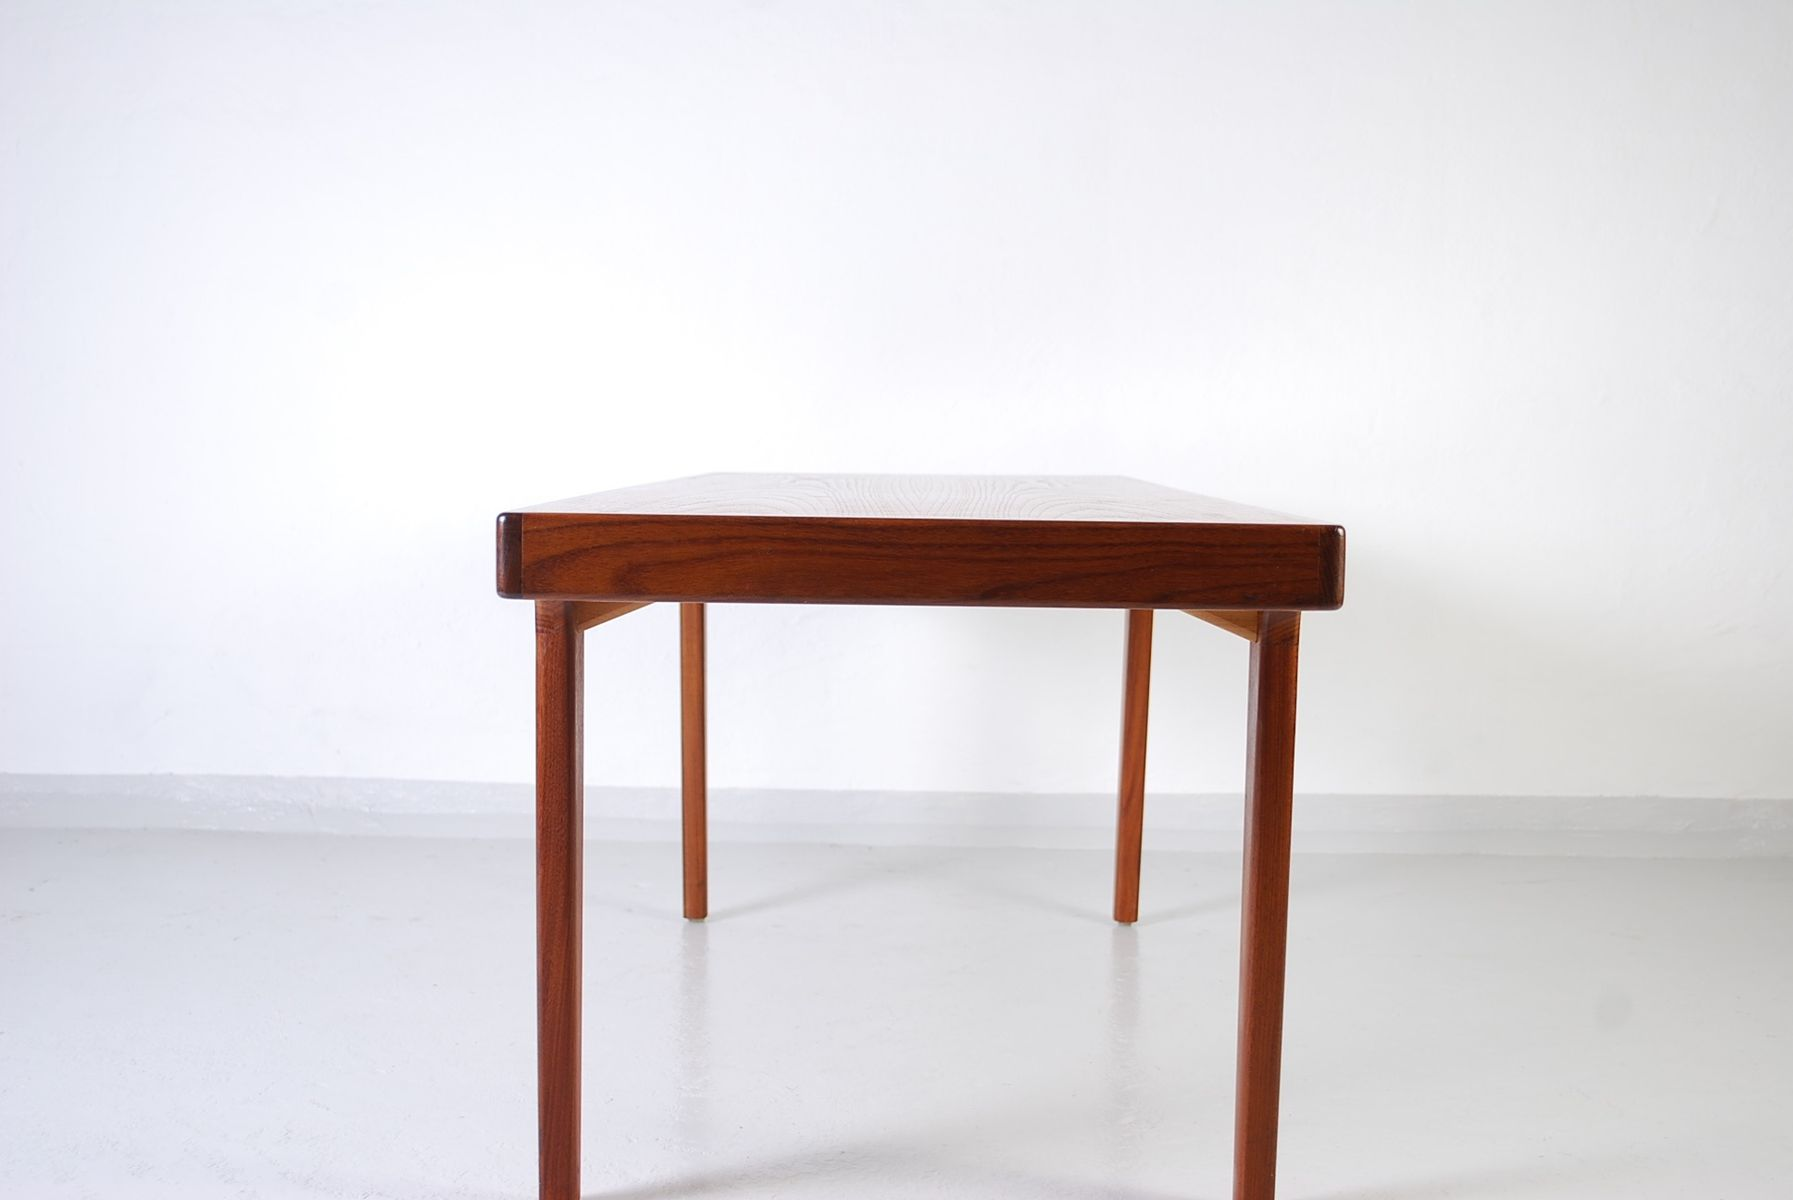 Vintage Teak Coffee Table with Detailed Sides for sale at Pamono